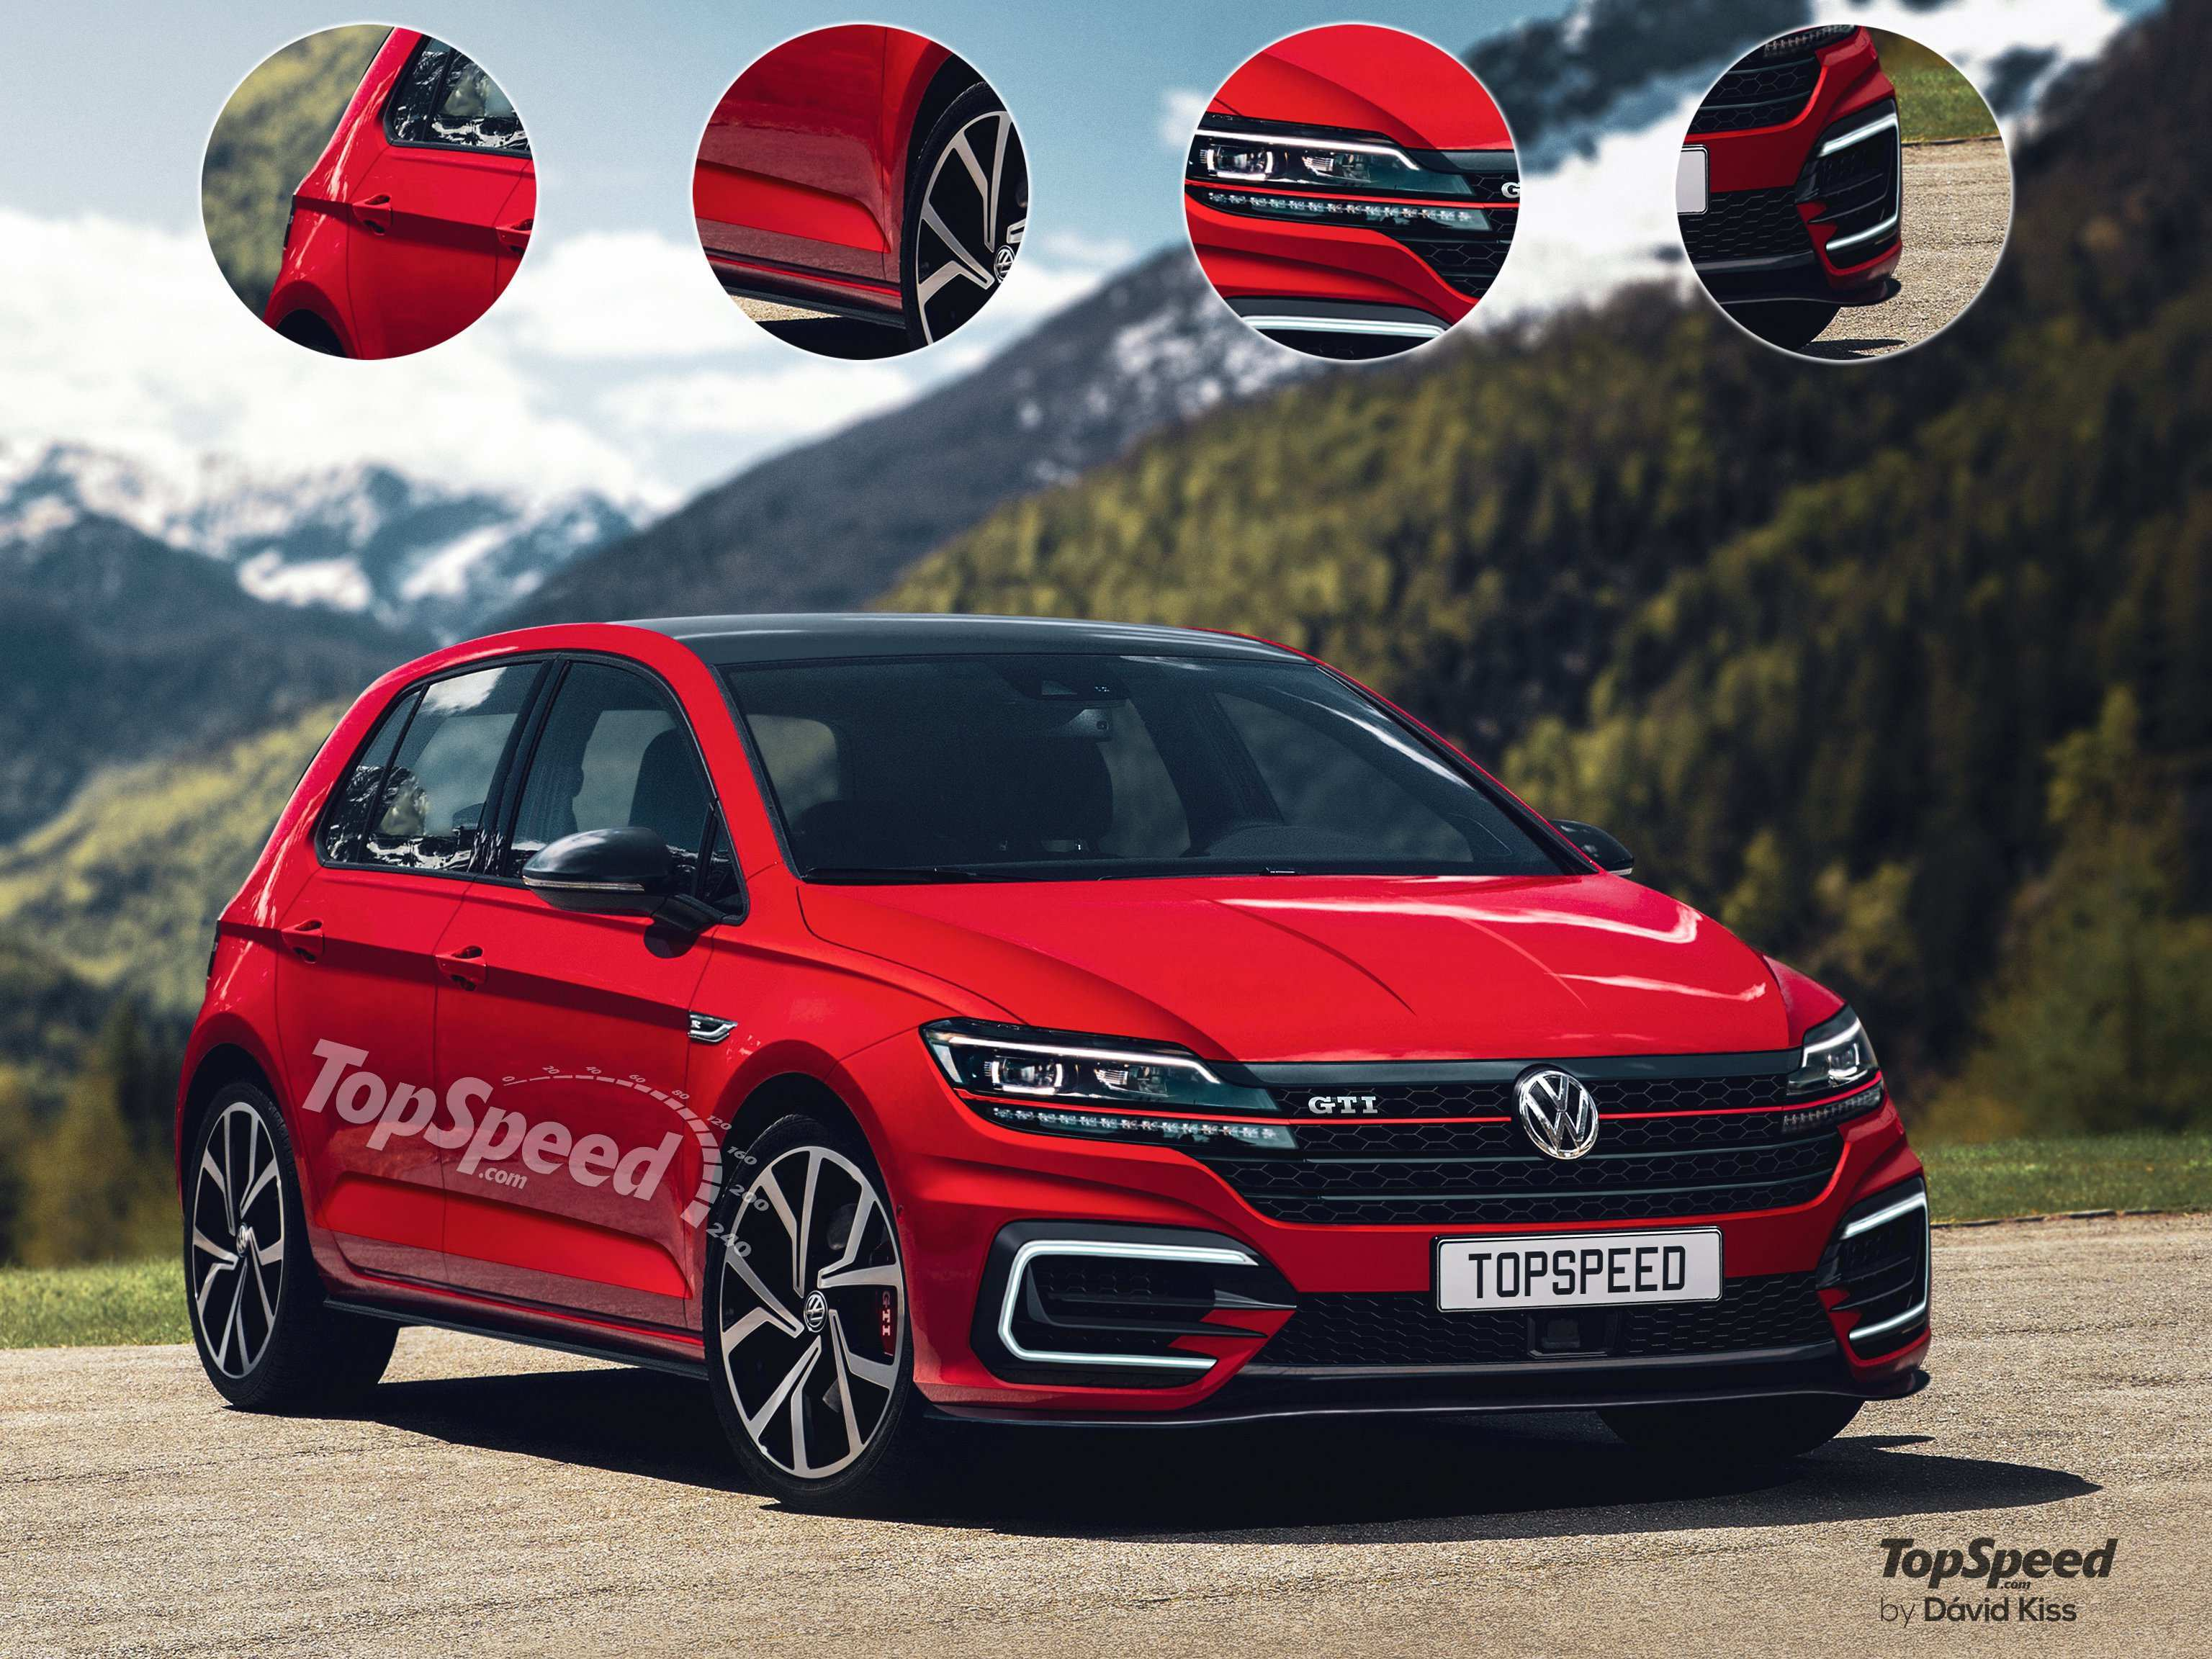 84 Best Review 2020 Vw Golf Mk8 Prices with 2020 Vw Golf Mk8